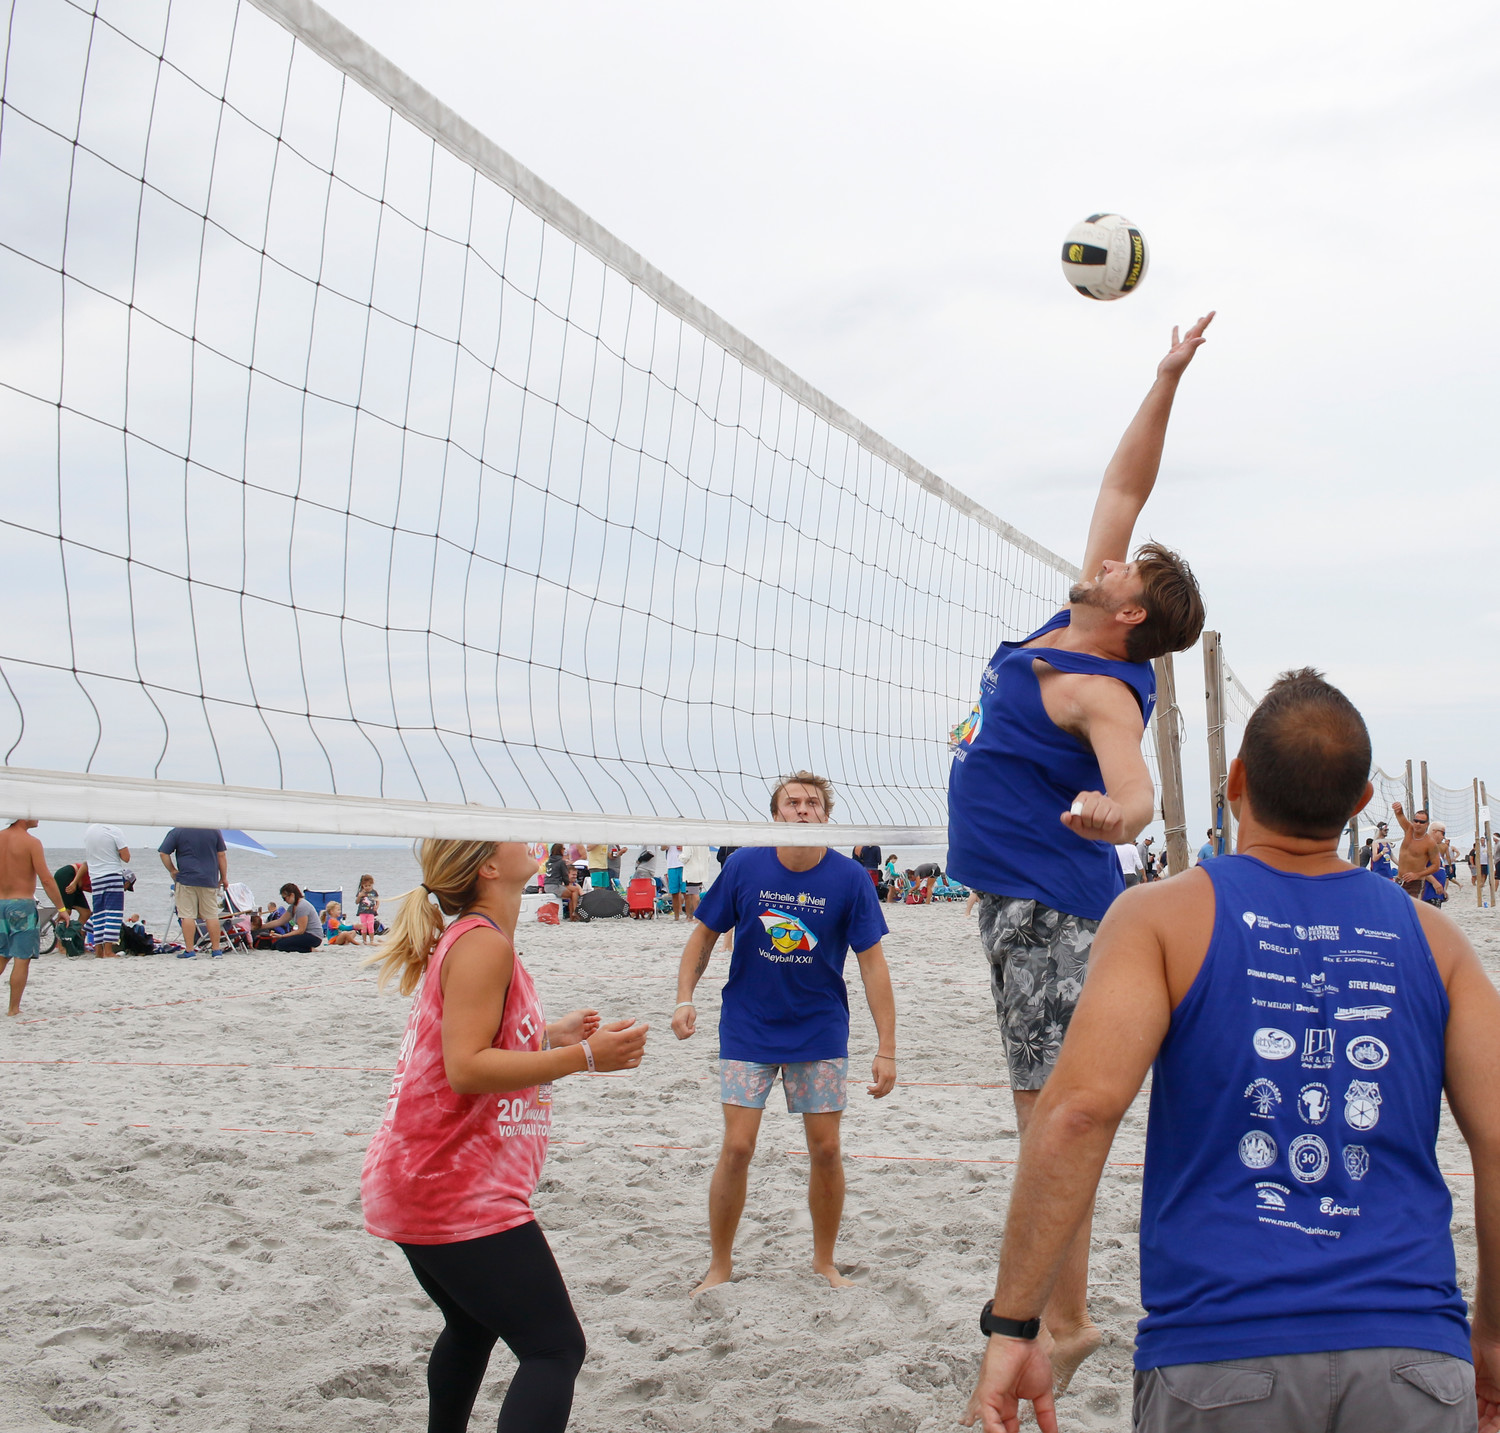 David Sorise spiked the ball over the net as his team, Socks on the Beach, competed against the Fozzies at the 22nd annual Michelle O'Neill Volleyball Tournament on Sept. 8.